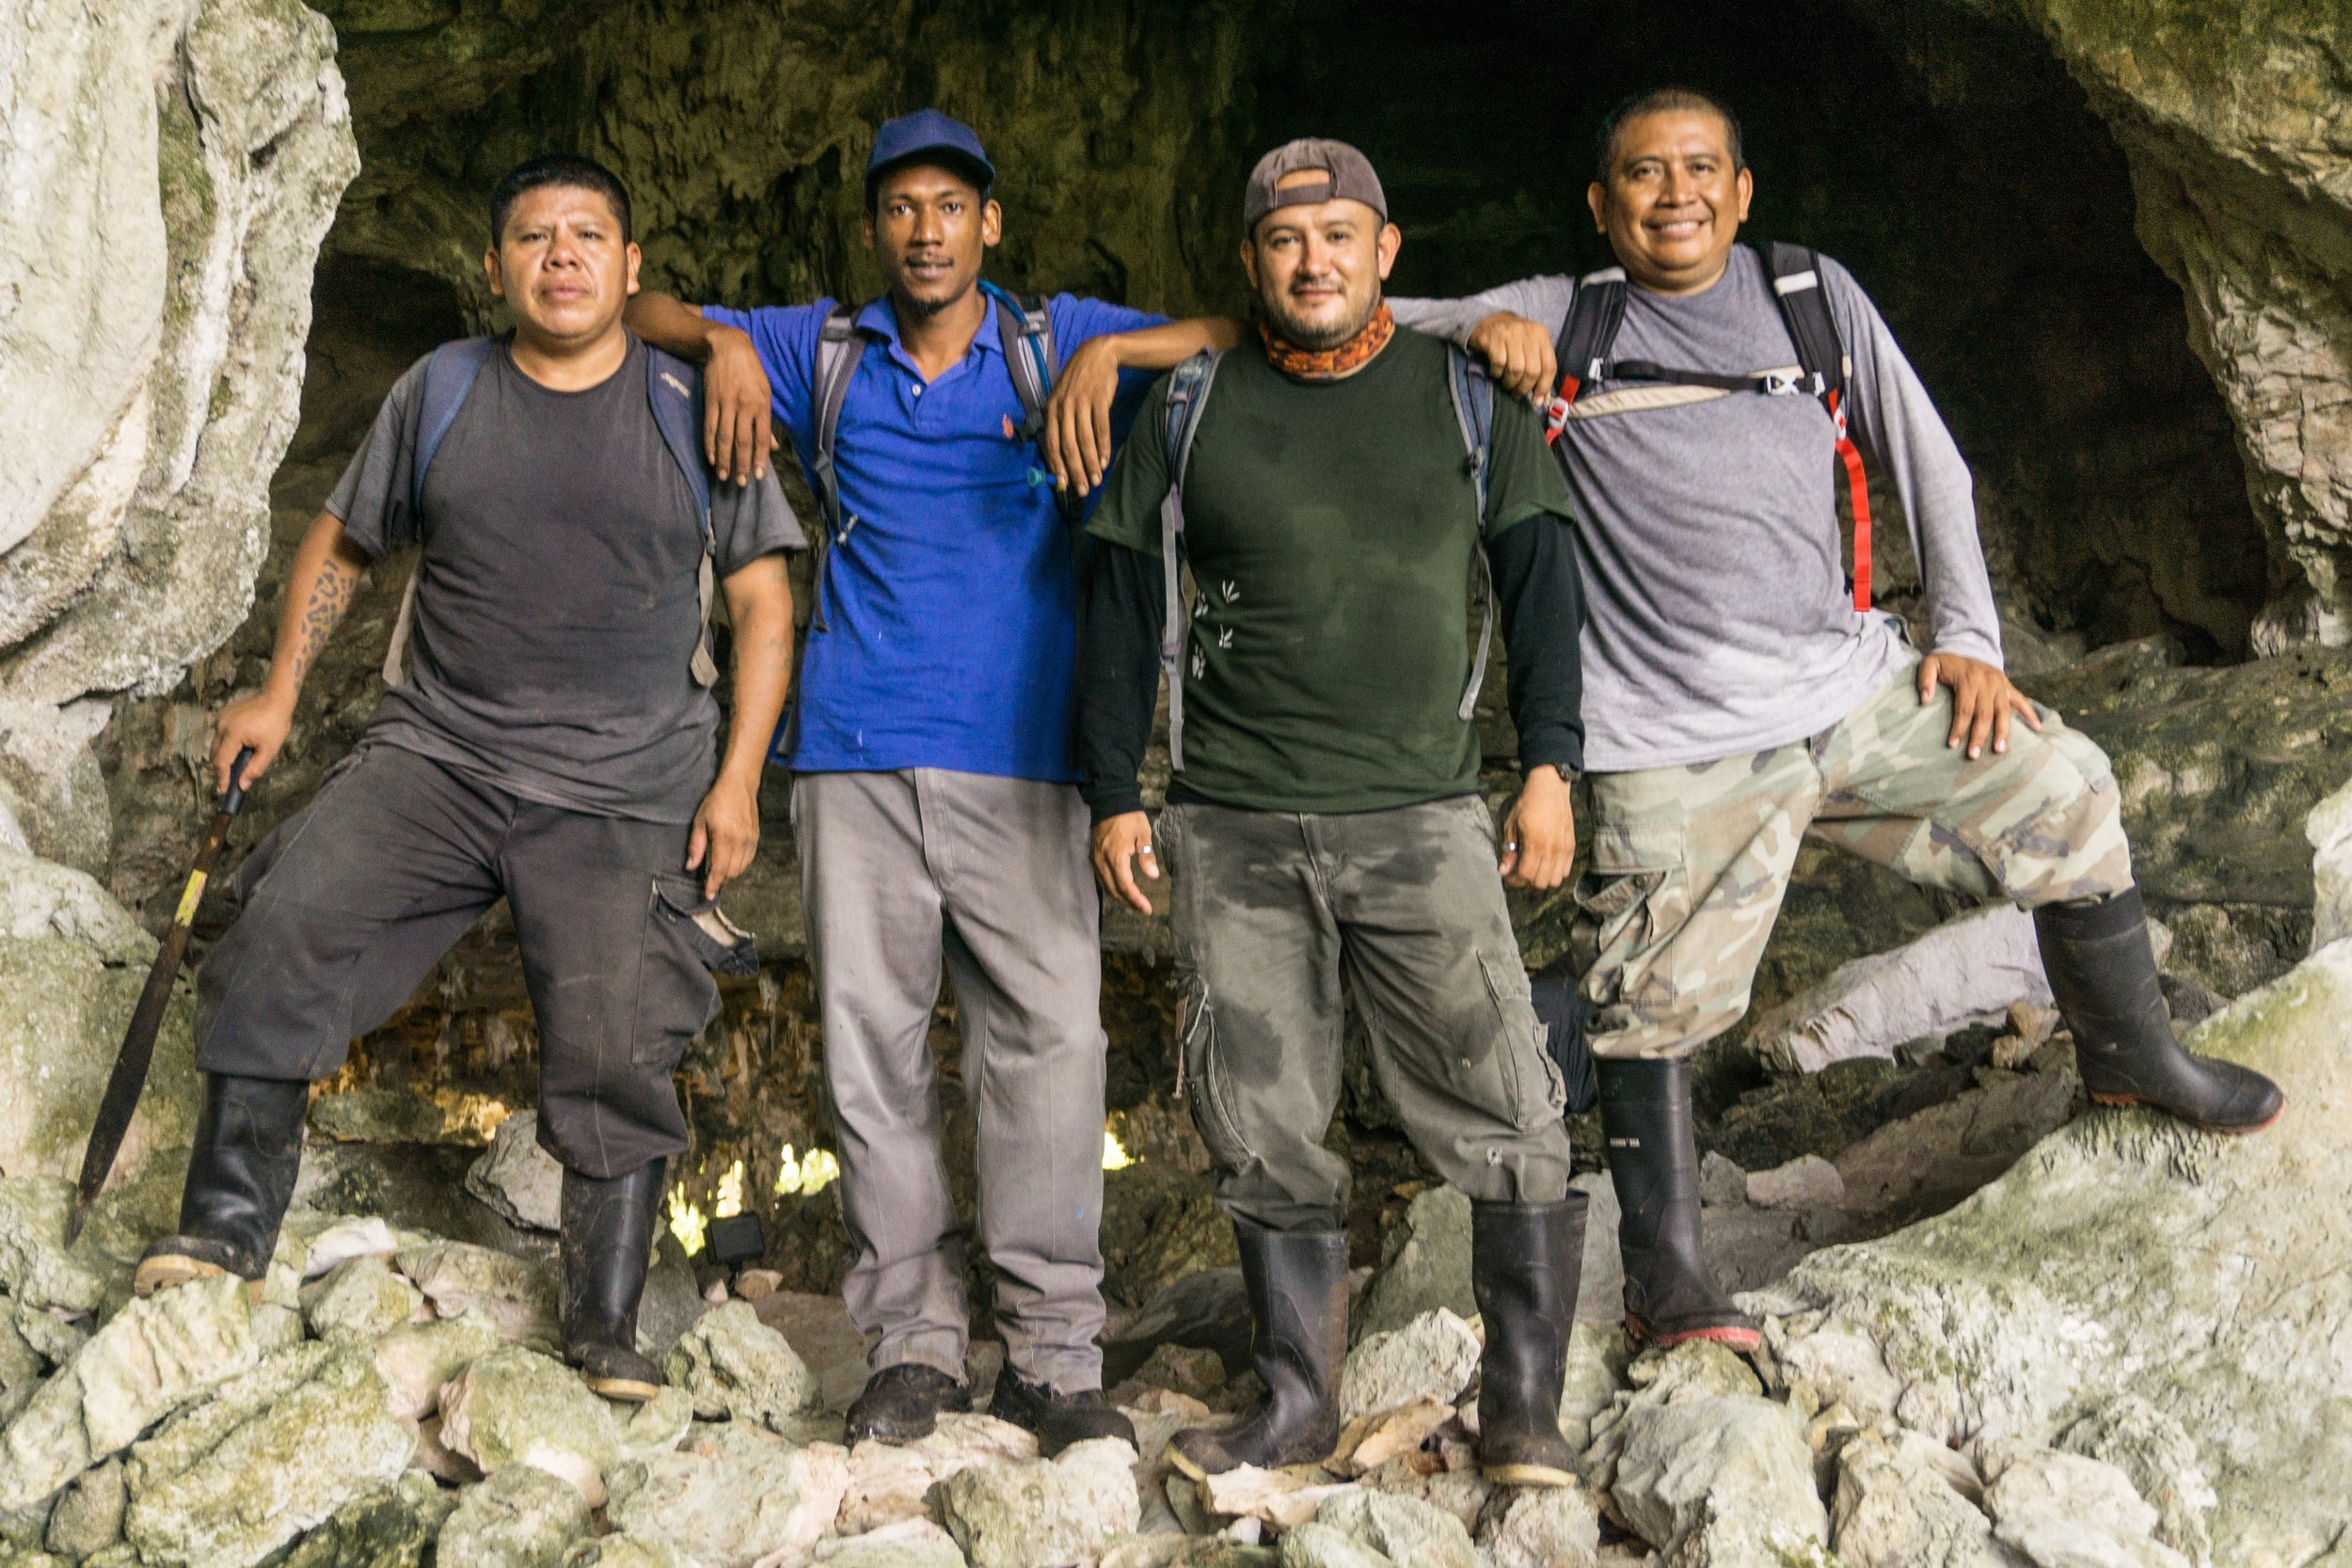 The team at the entrance to Breeze Tunnel. Thanks to Wilber Martinez (far right), Reynold Cal (far left), and Stevan Reneau (2nd from left) who all work at Runaway Creek, and Jonathan Flores (2nd from right), veterinarian who was there to help with the tapir project. Kayla Hartwell is sadly missing from this excellent team shot.